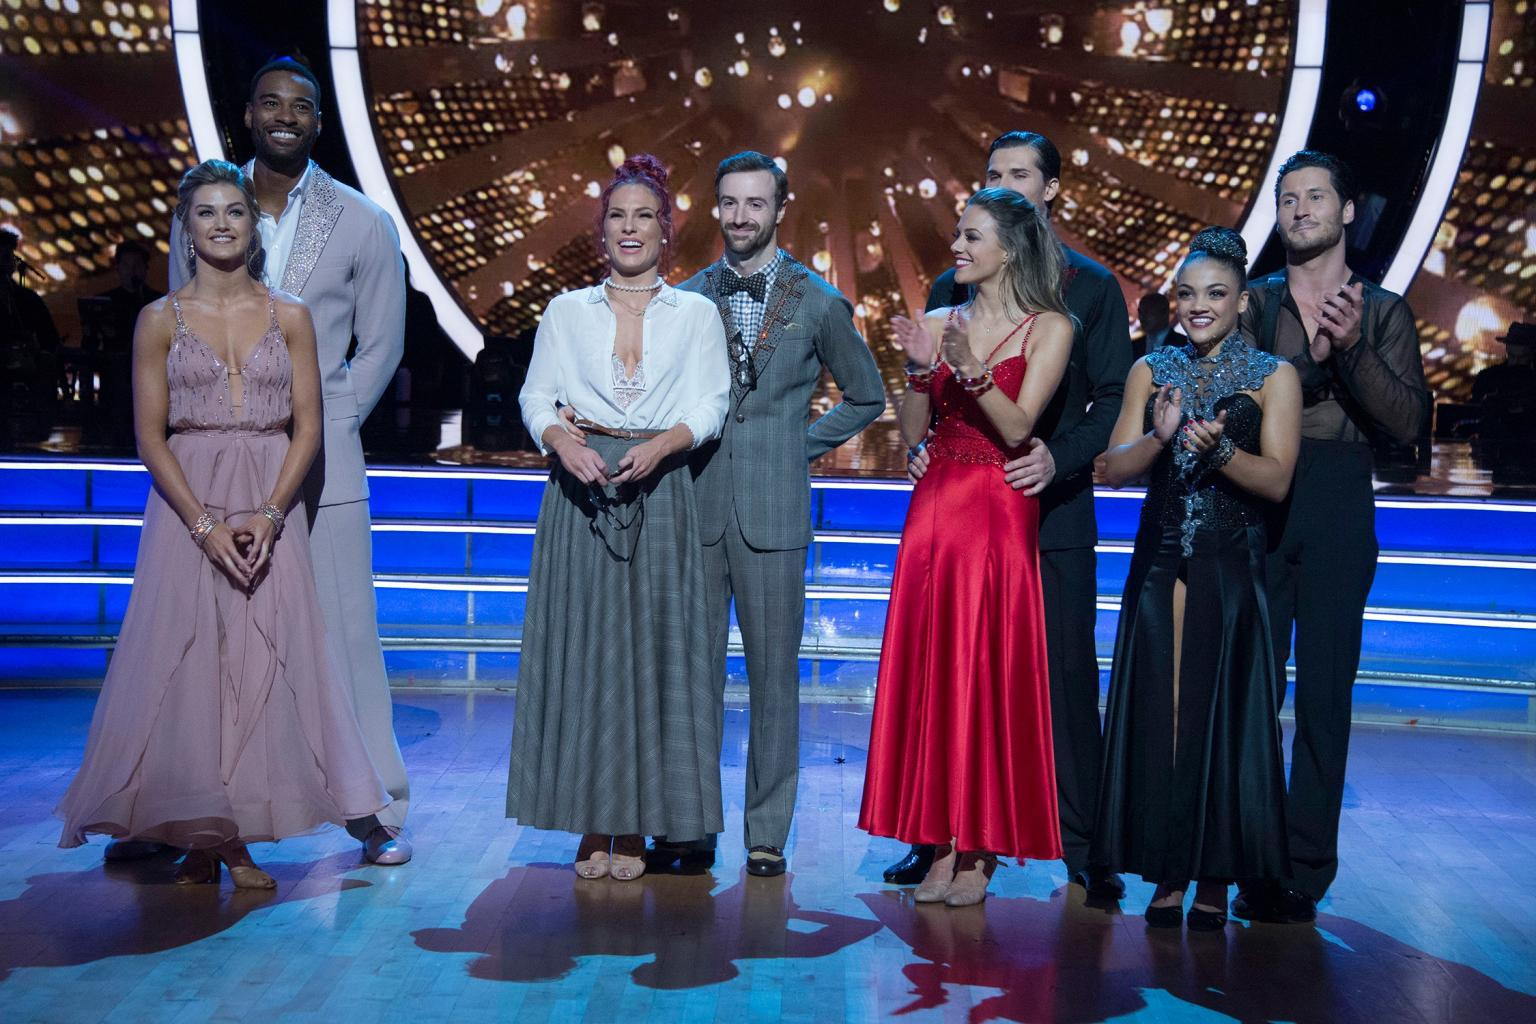 Dancing with the Stars Crowns Laurie Hernandez as Its Season 23 Mirrorball Trophy Winner